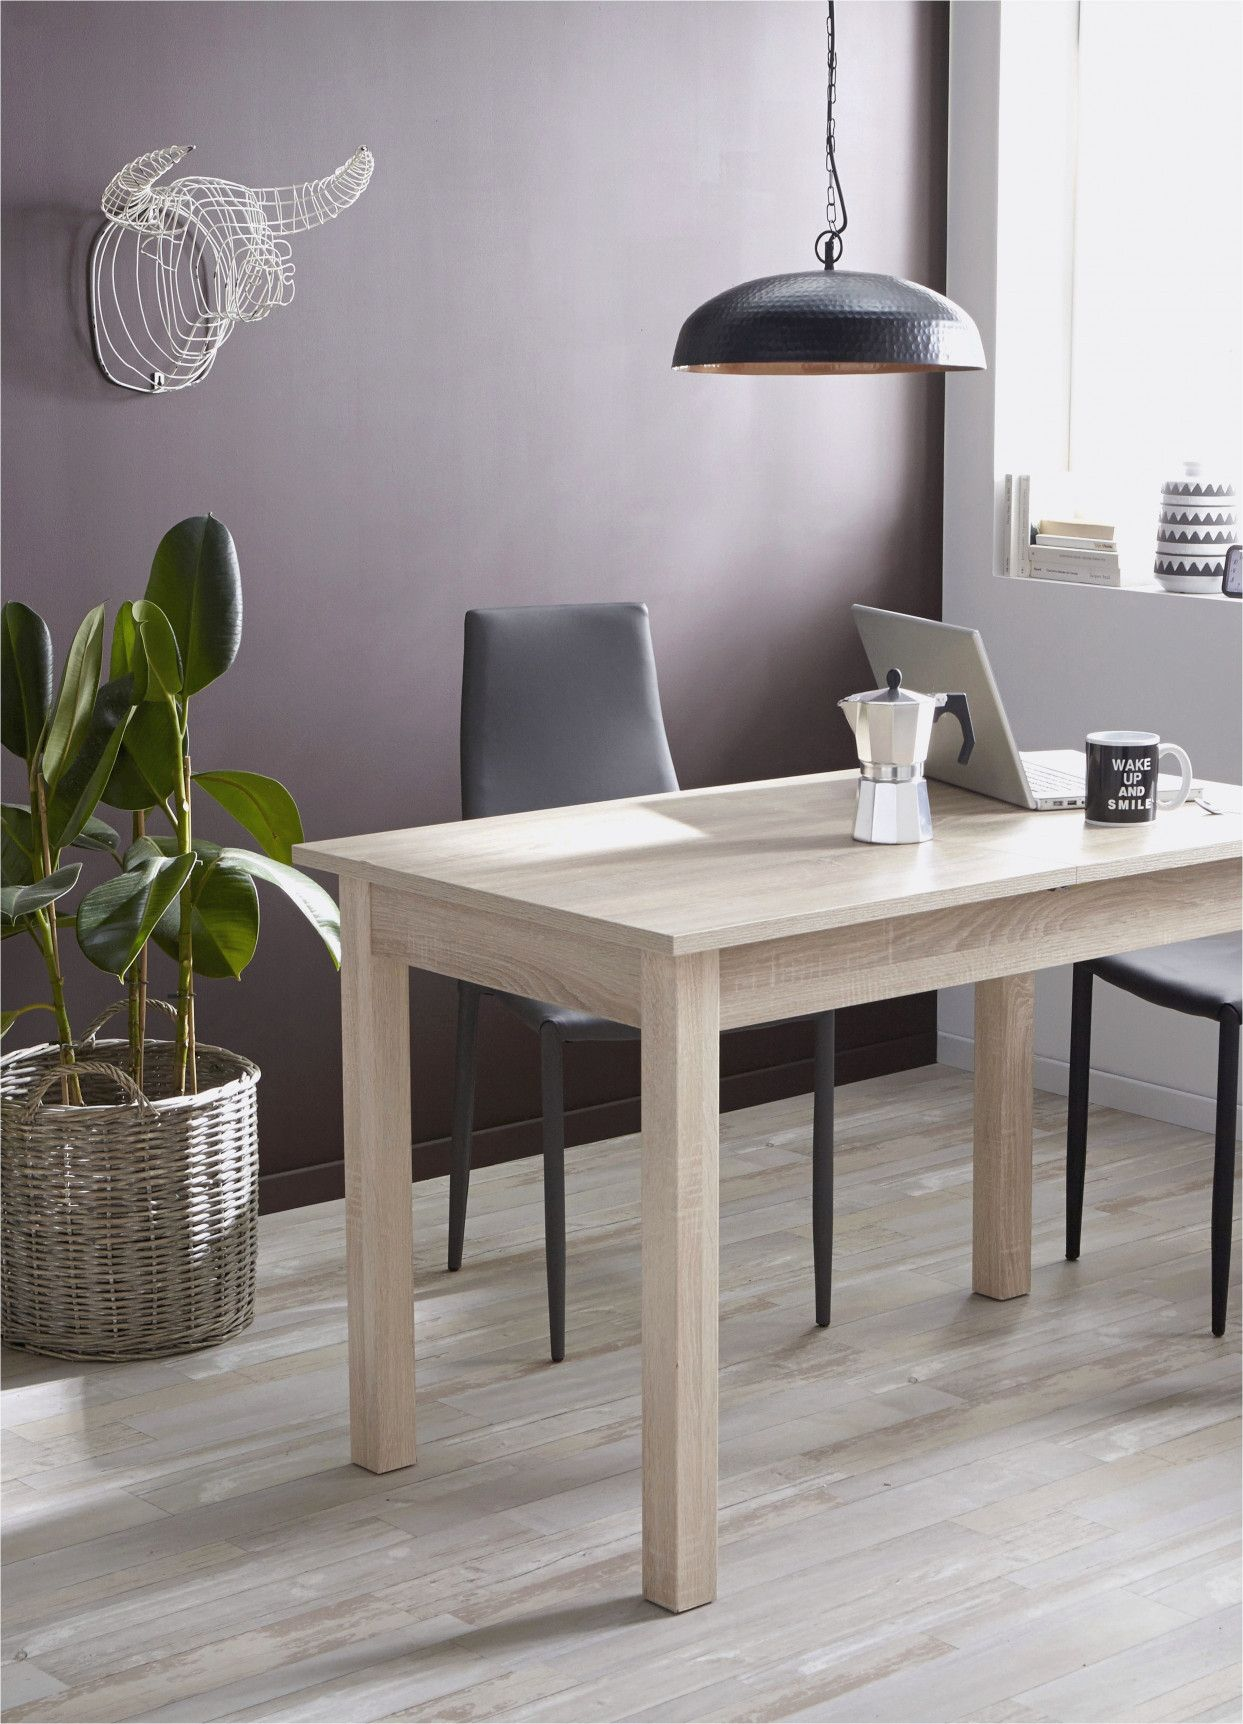 Inspirational Le Bon Coin Ajaccio Ikea Dining Room Iron Table Dining Room Sets